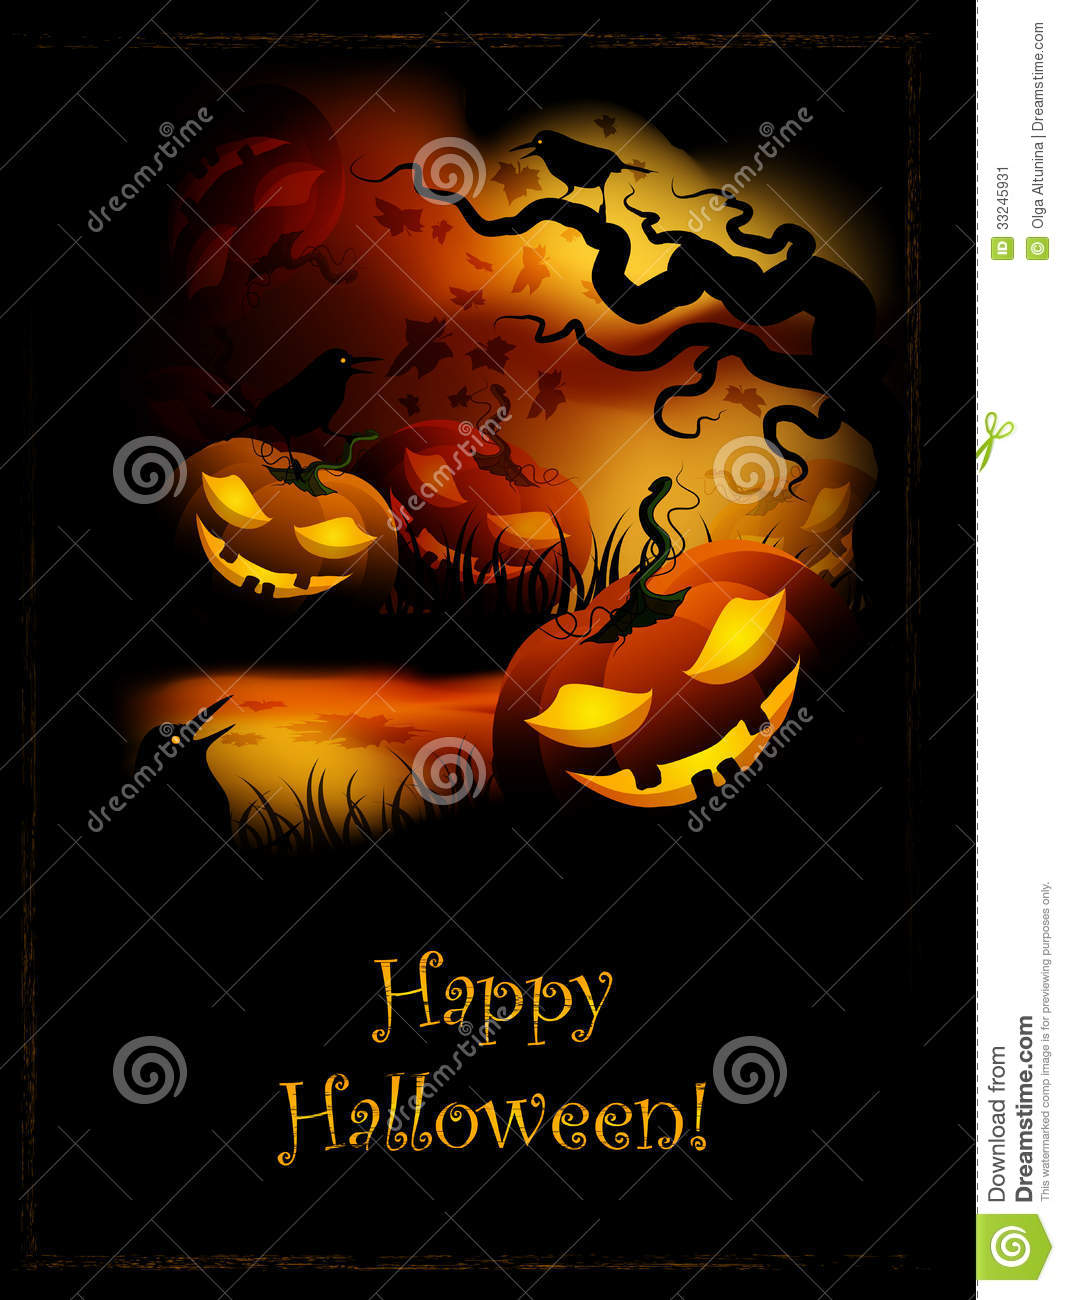 Halloween Pumpkin Stock Image - Image: 33245931